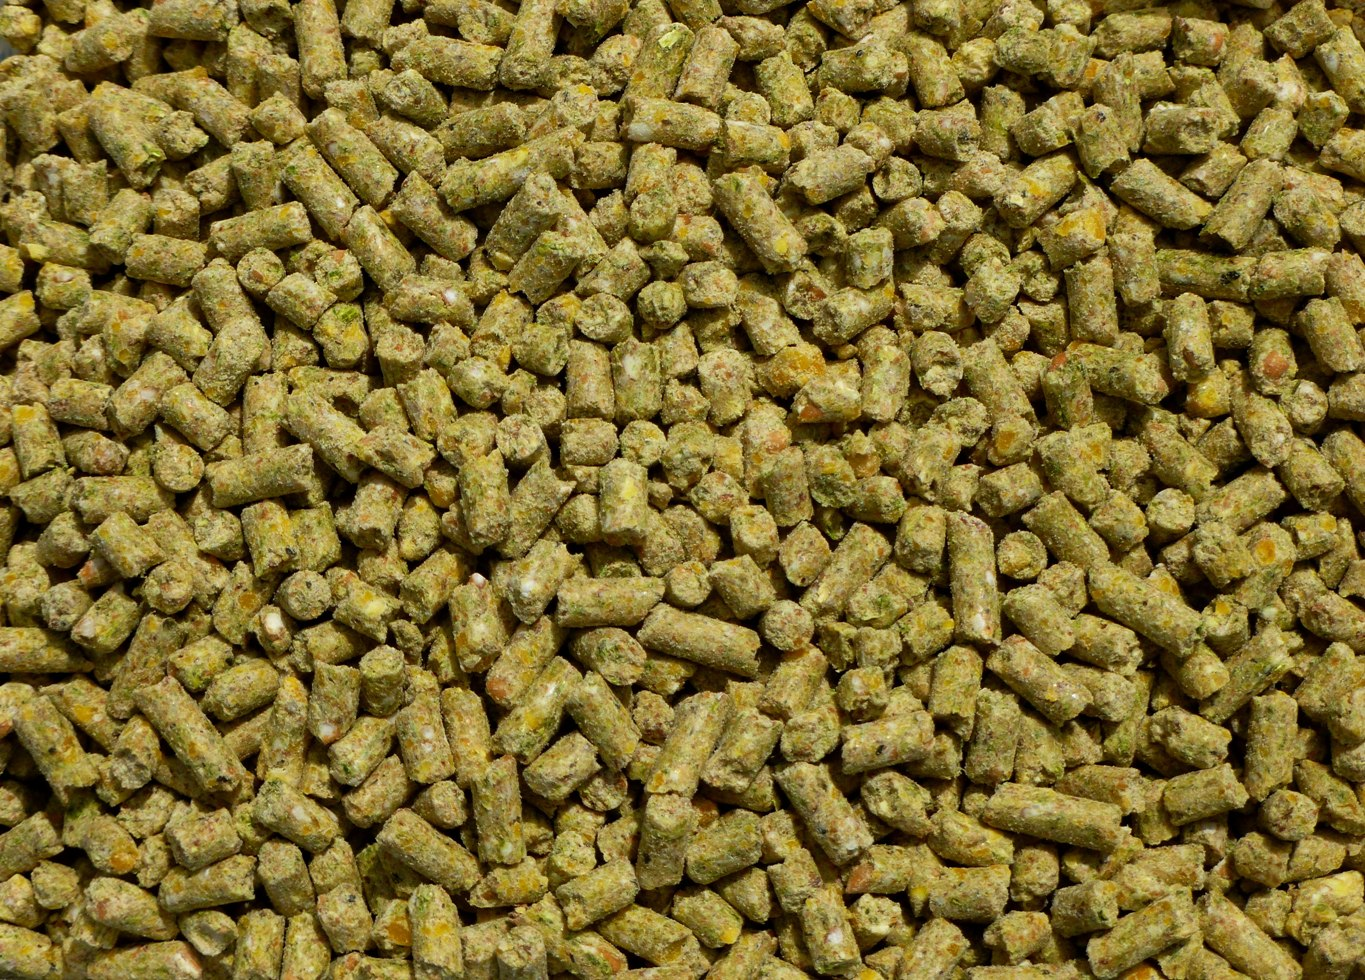 Soy Amp Corn Free Organic Layer Feed 50lb From My Pet Chicken